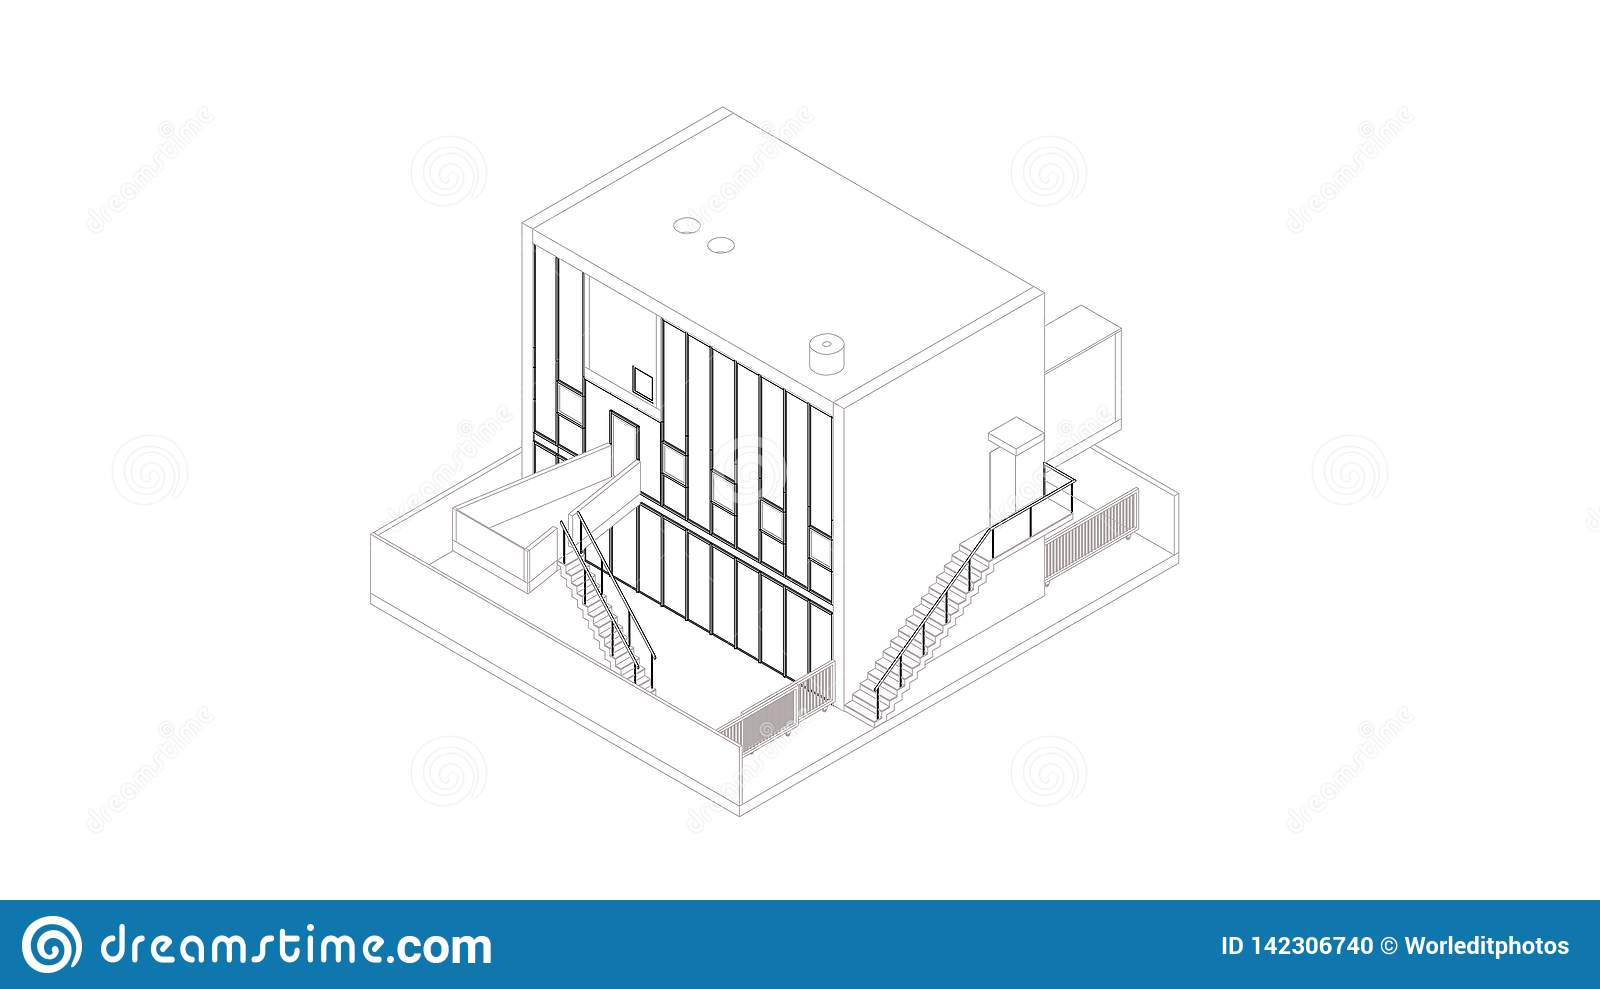 Abstract wireframe perspective of 3D building